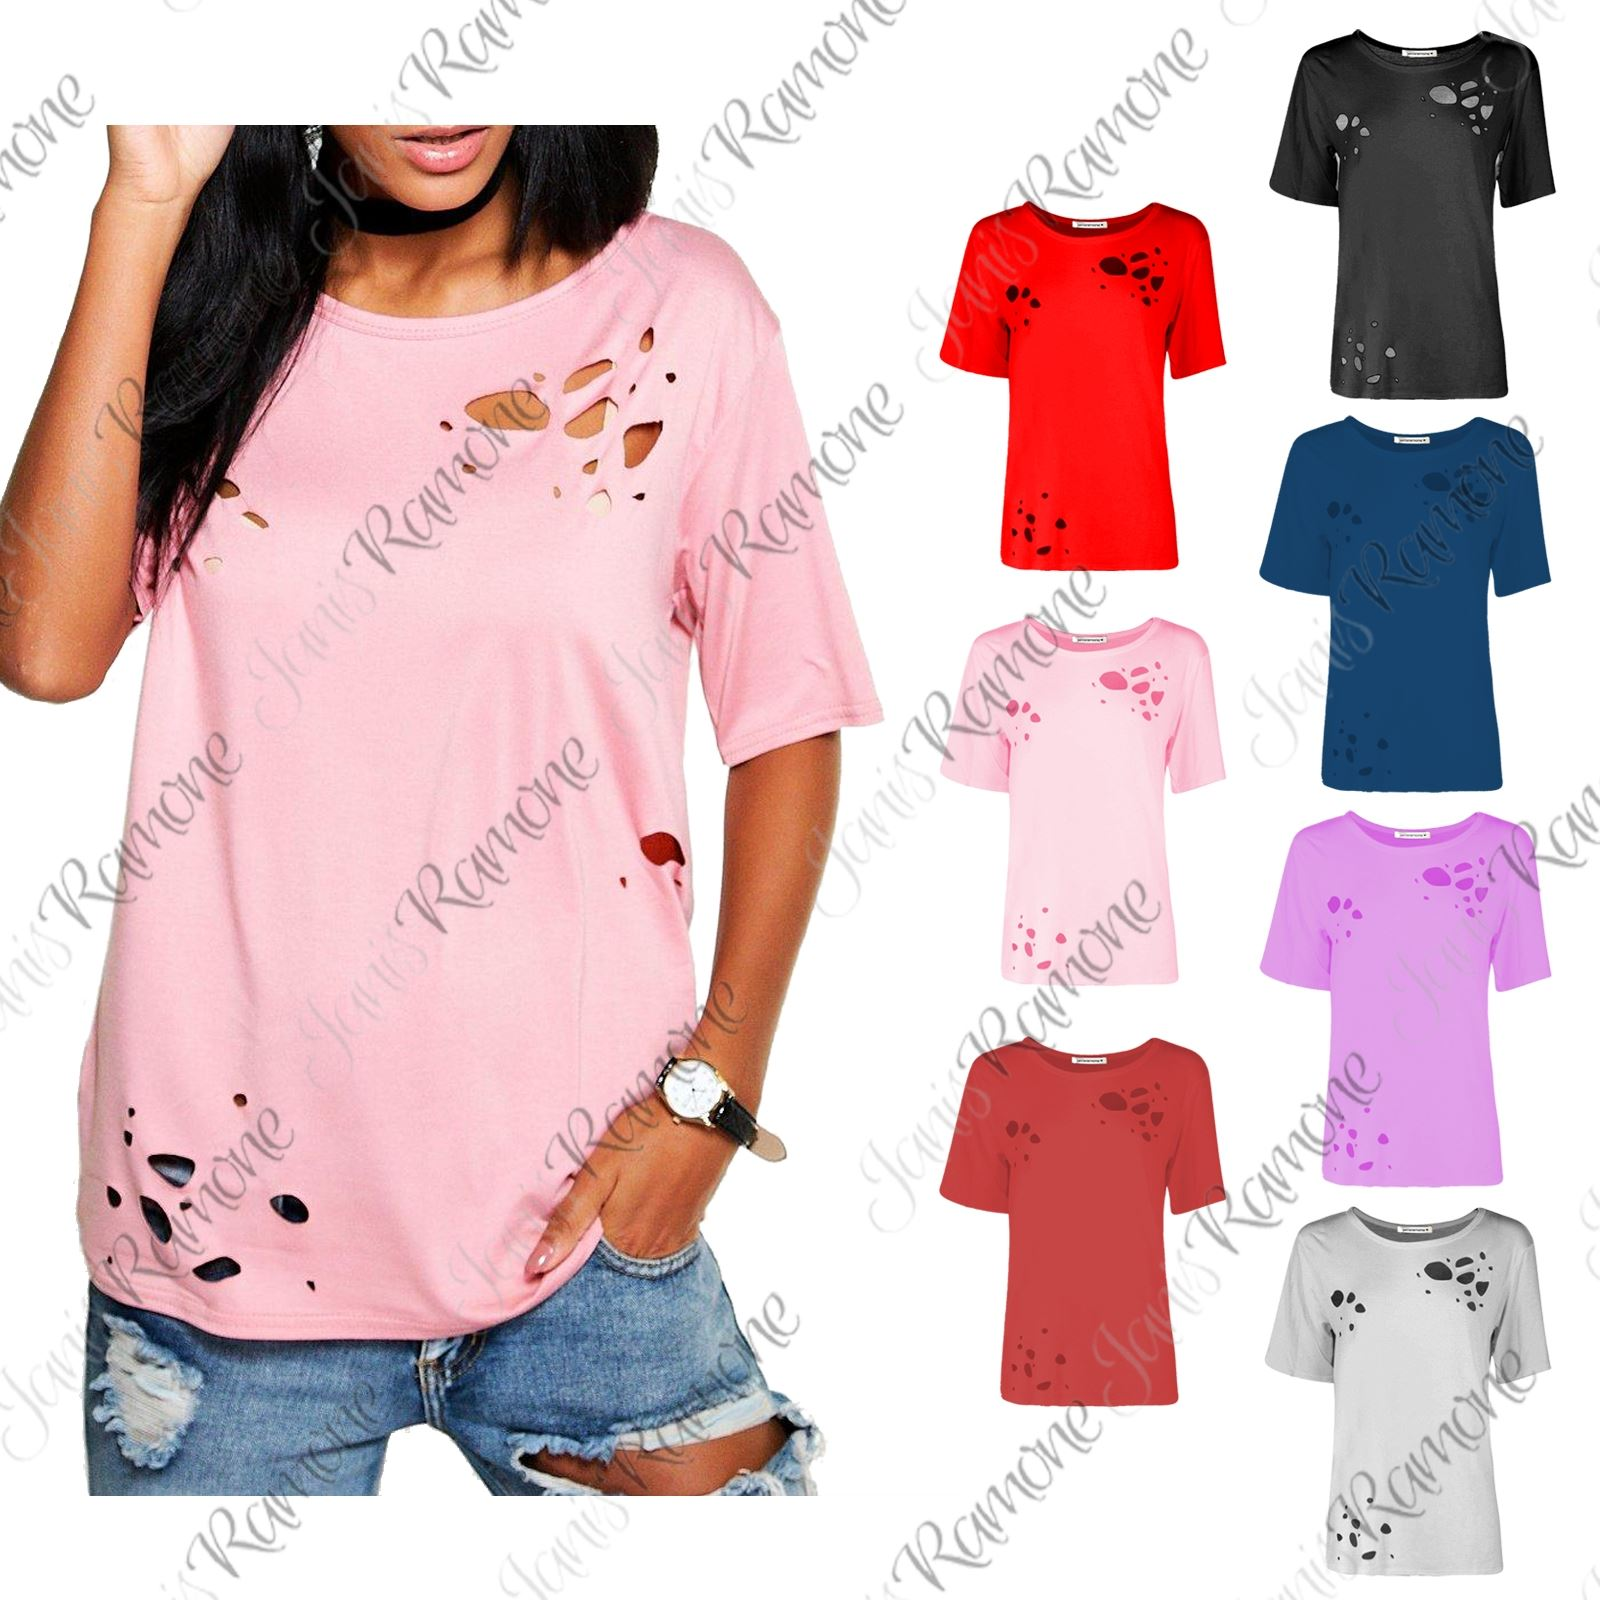 Women/'s Distressed Top Short Sleeve Loose T-Shirt NEW!